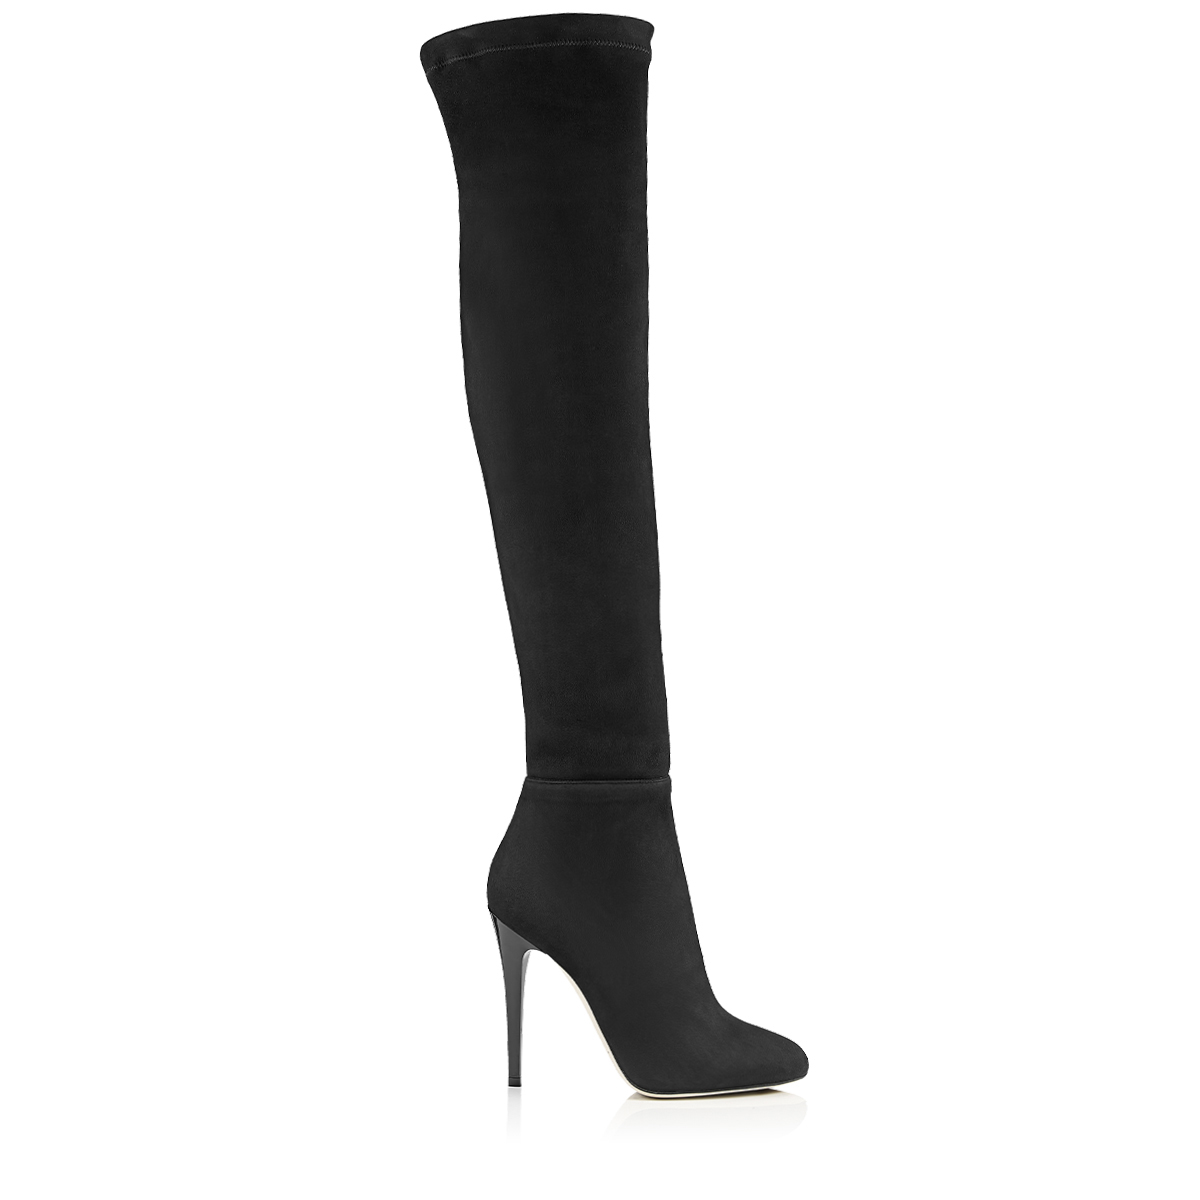 TURNER Black Suede and Stretch Suede Over the Knee Boots by Jimmy Choo